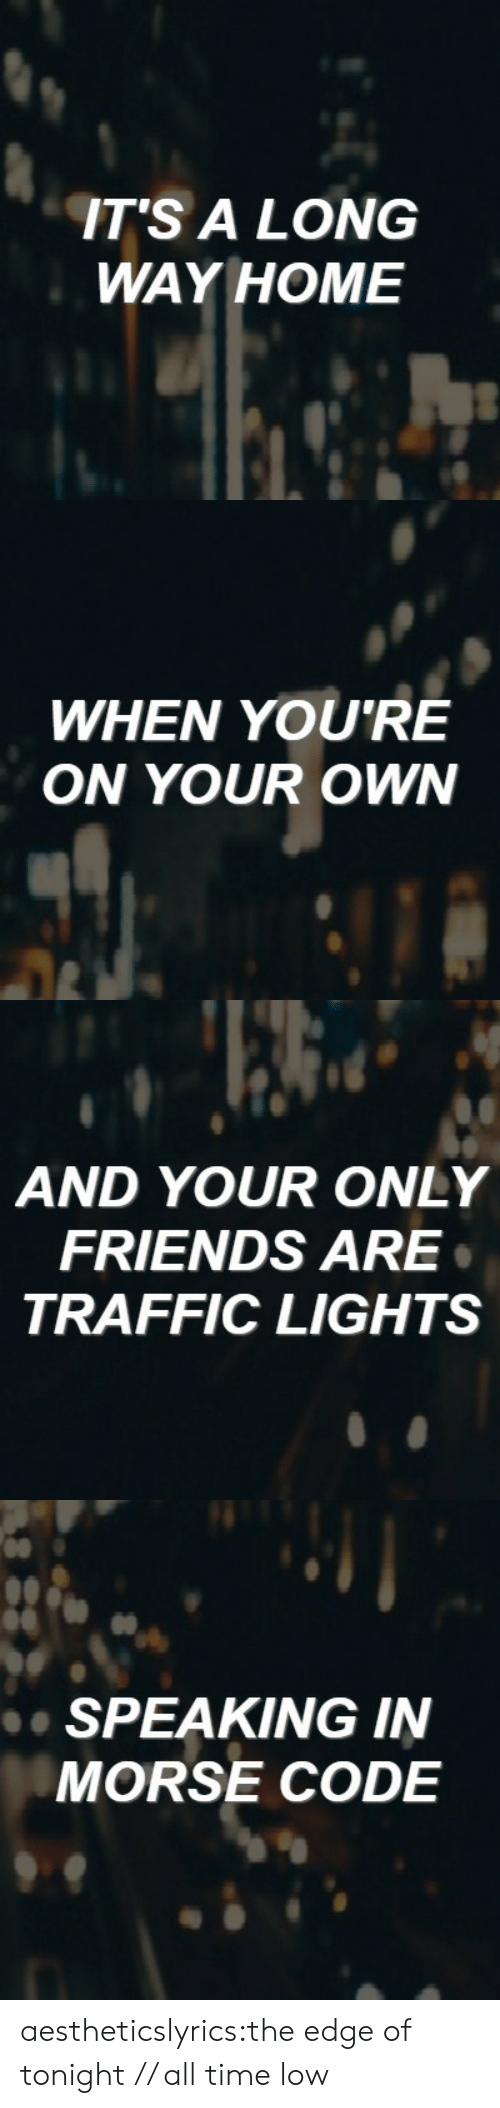 morse code: ITS A LONG  WAY HOME   WHEN YOU'RE  ON YOUR OWN   AND YOUR ONLY  FRIENDS ARE  TRAFFIC LIGHTS   de  SPEAKING IN  MORSE CODE aestheticslyrics:the edge of tonight // all time low